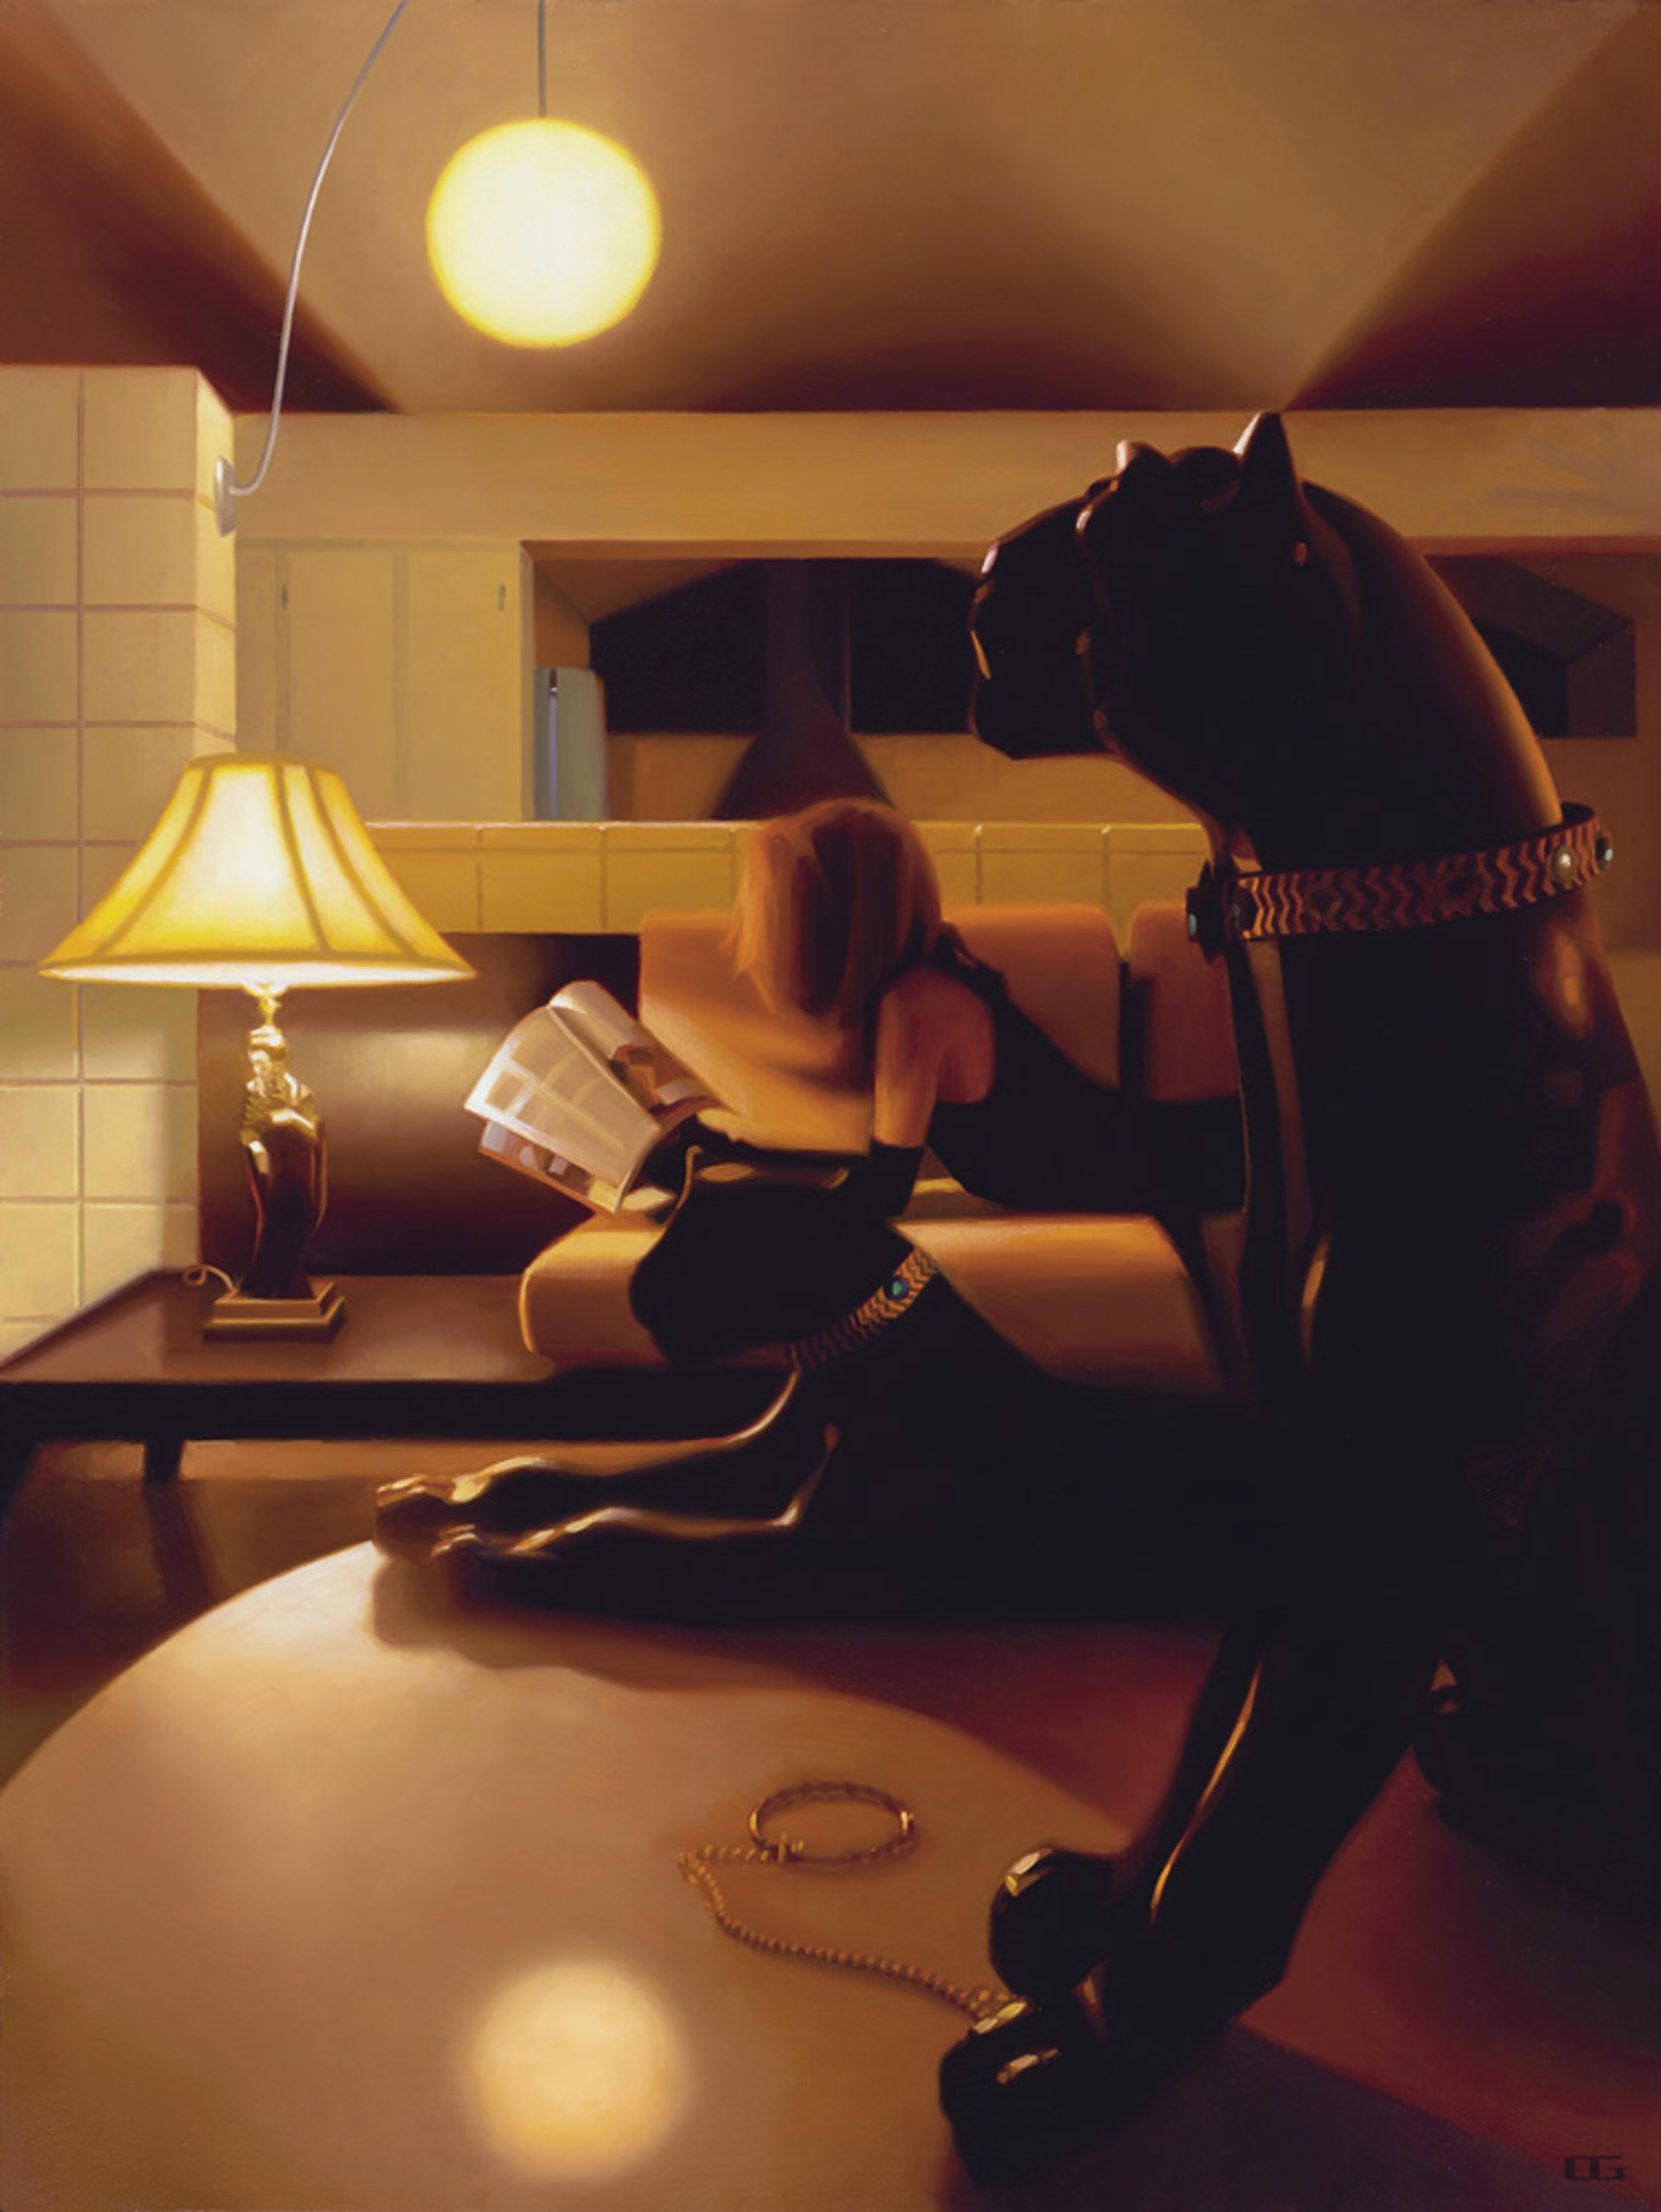 Just Be Still With Me (A/P) by Carrie Graber